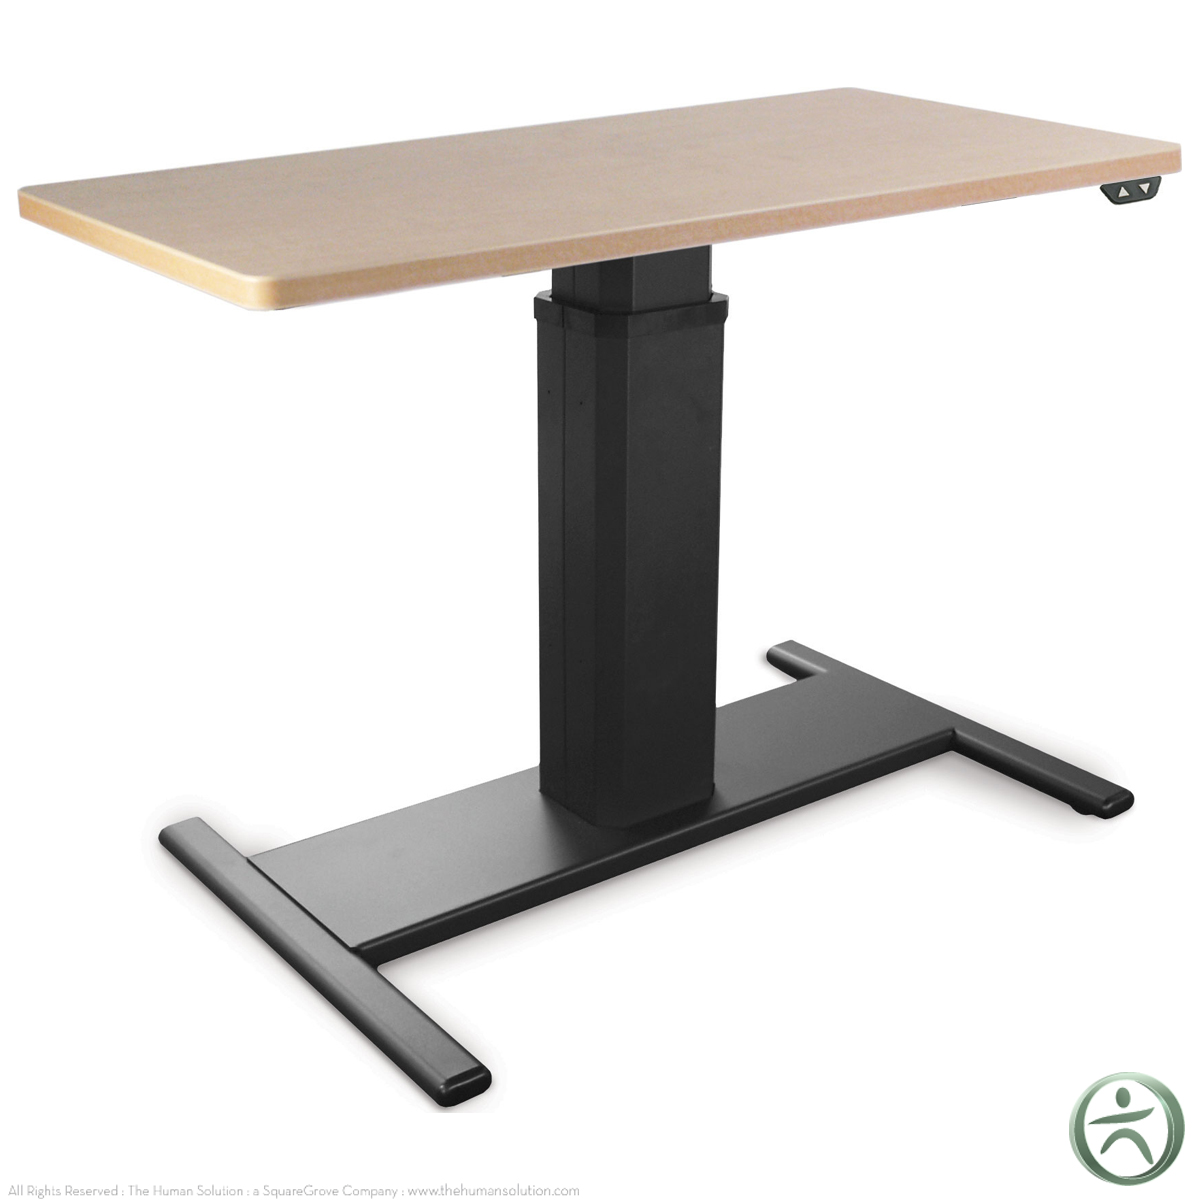 adjustable adjustable height desk. Black Bedroom Furniture Sets. Home Design Ideas